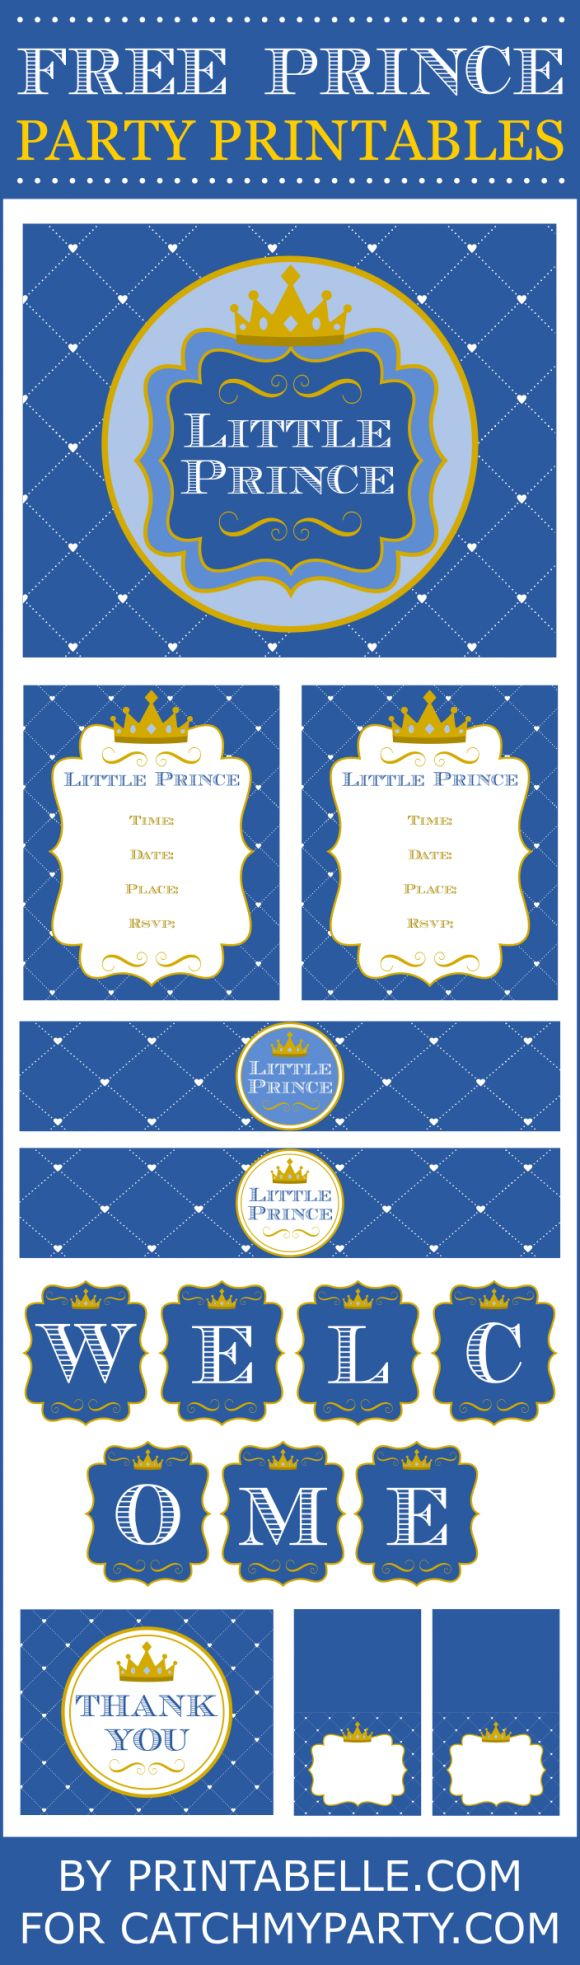 Free Prince party printables perfect for a boy baby shower or boy 1st birthday! | CatchMyParty.com